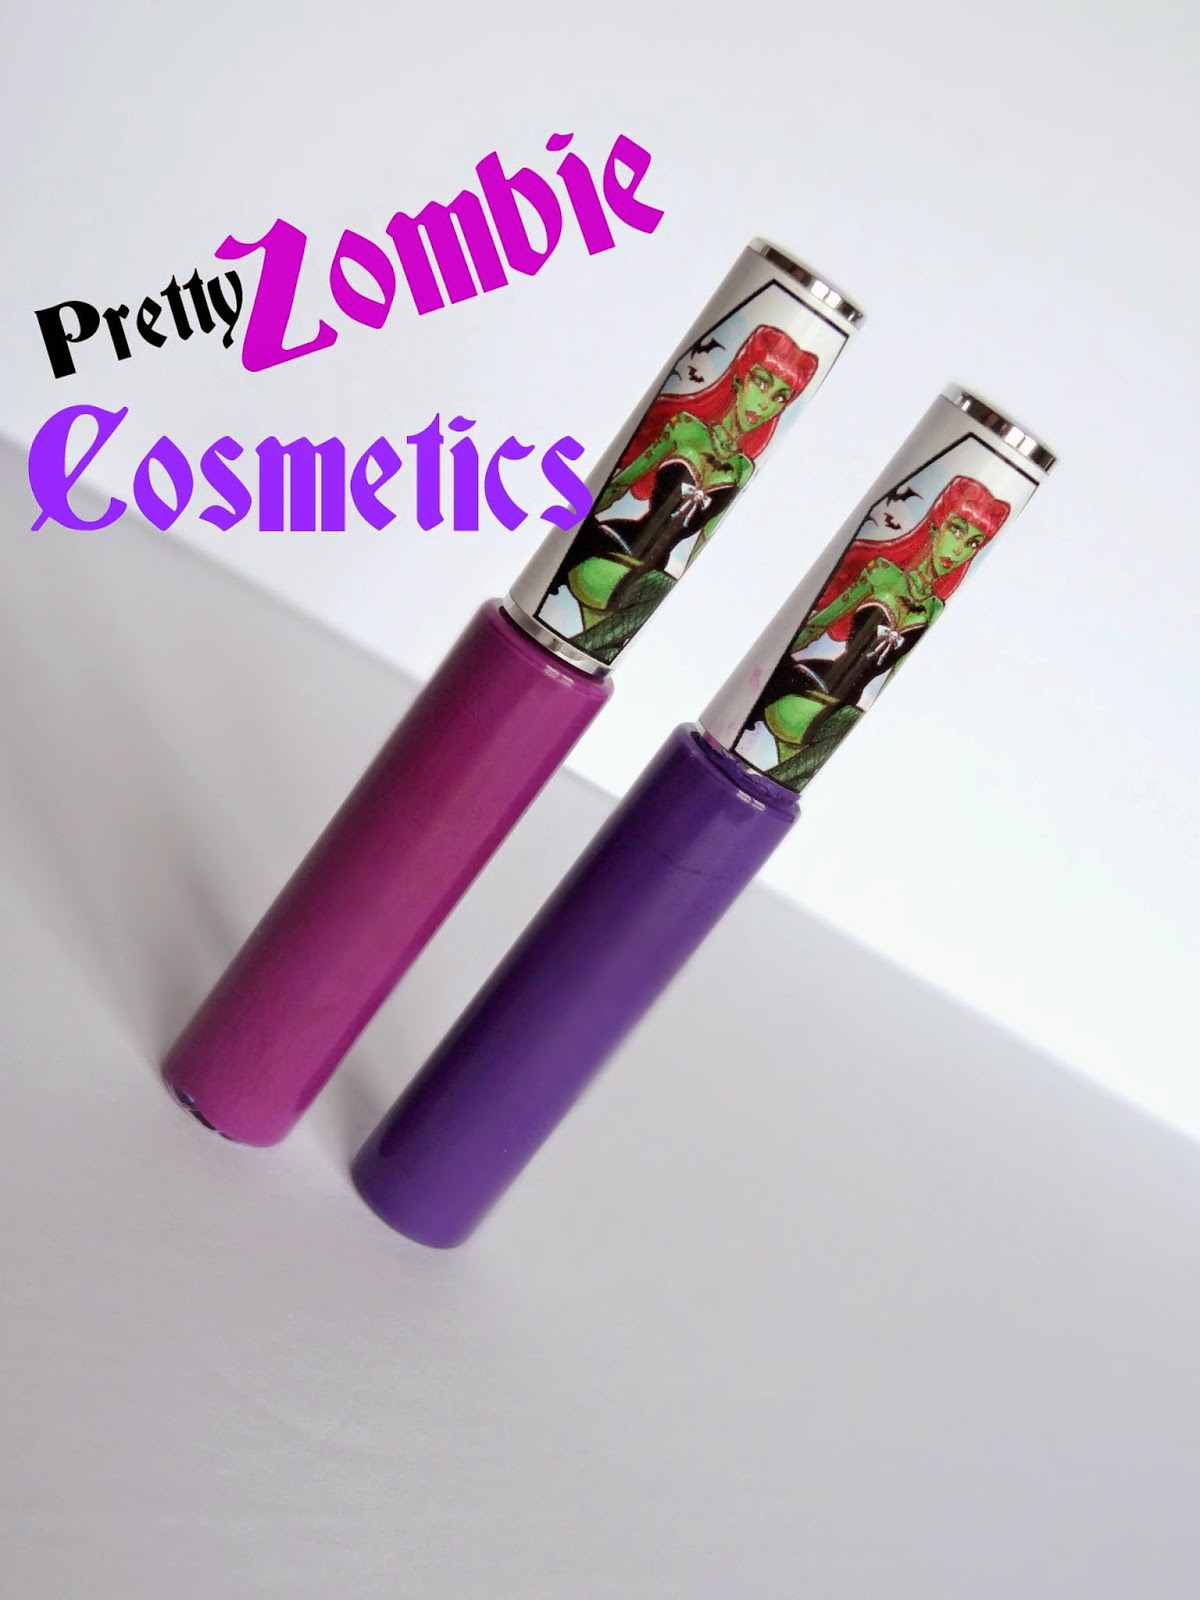 Pretty Zombie Cosmetics 3 witches and purple poison